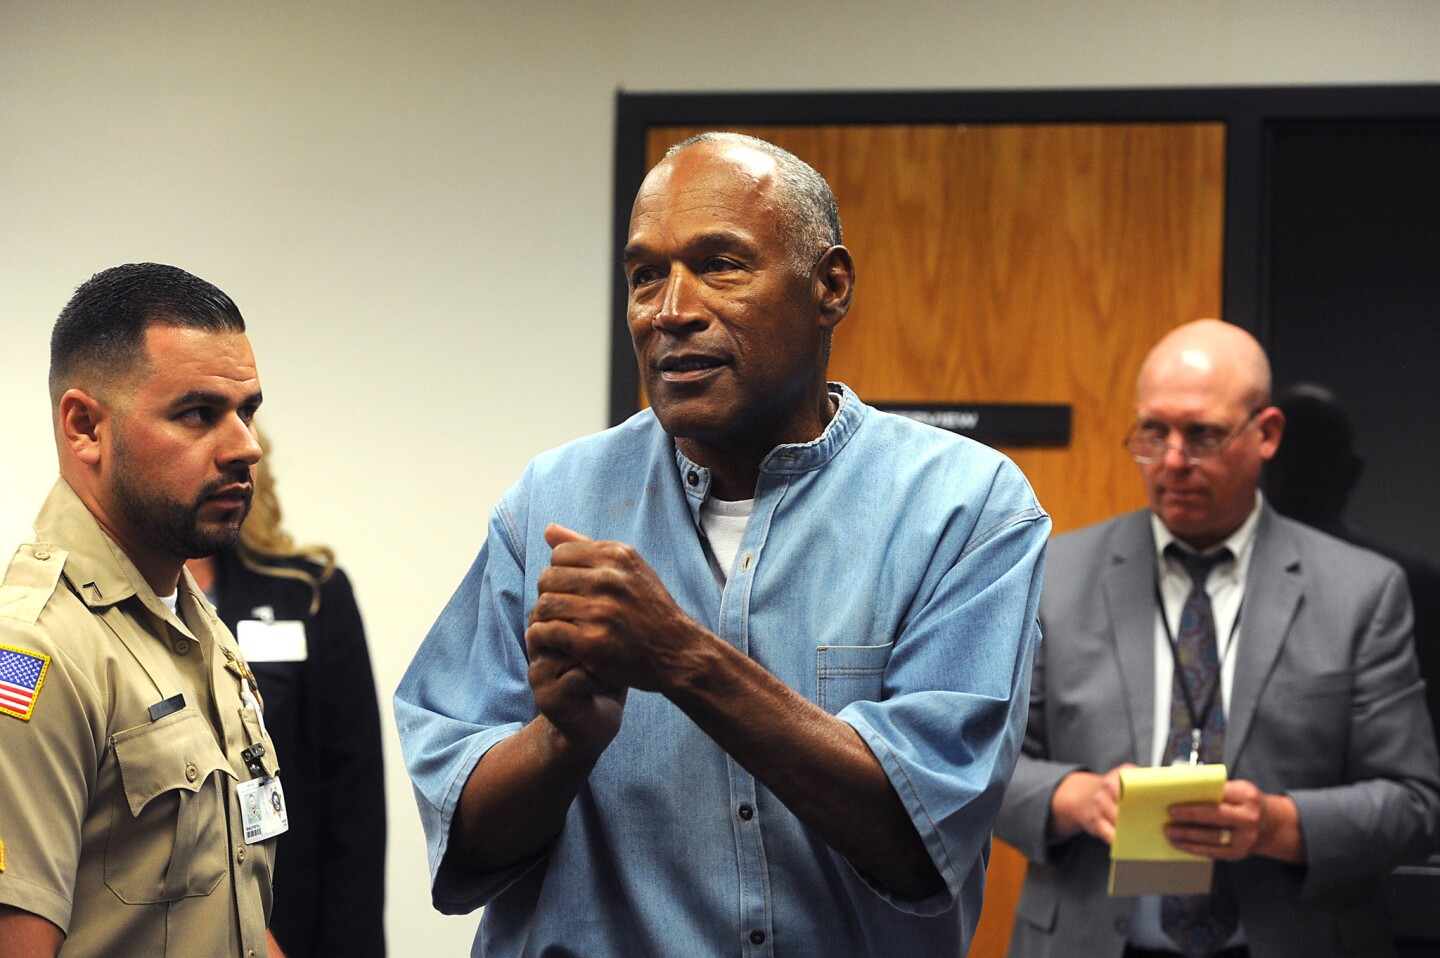 O.J. Simpson reacts after learning he was granted parole at Lovelock Correctional Center in Lovelock, Nevada.